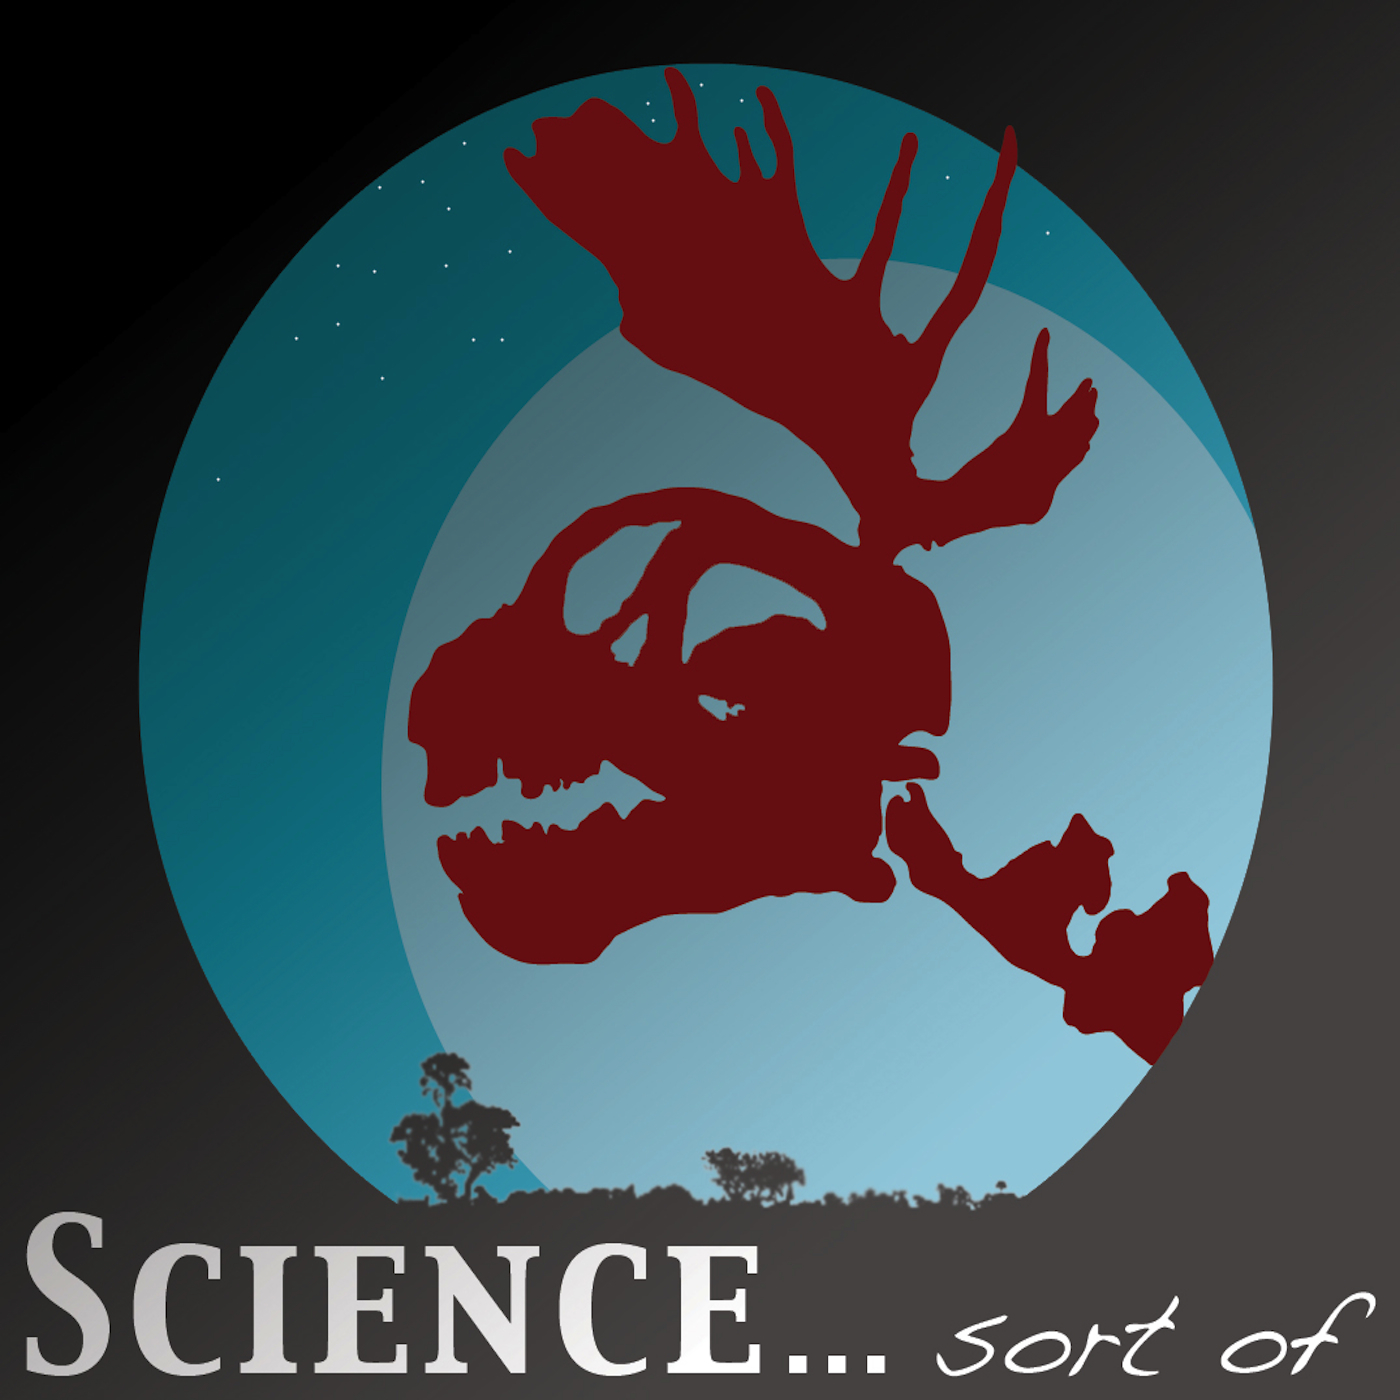 Ep 183: Science... sort of - A Center for Ants?